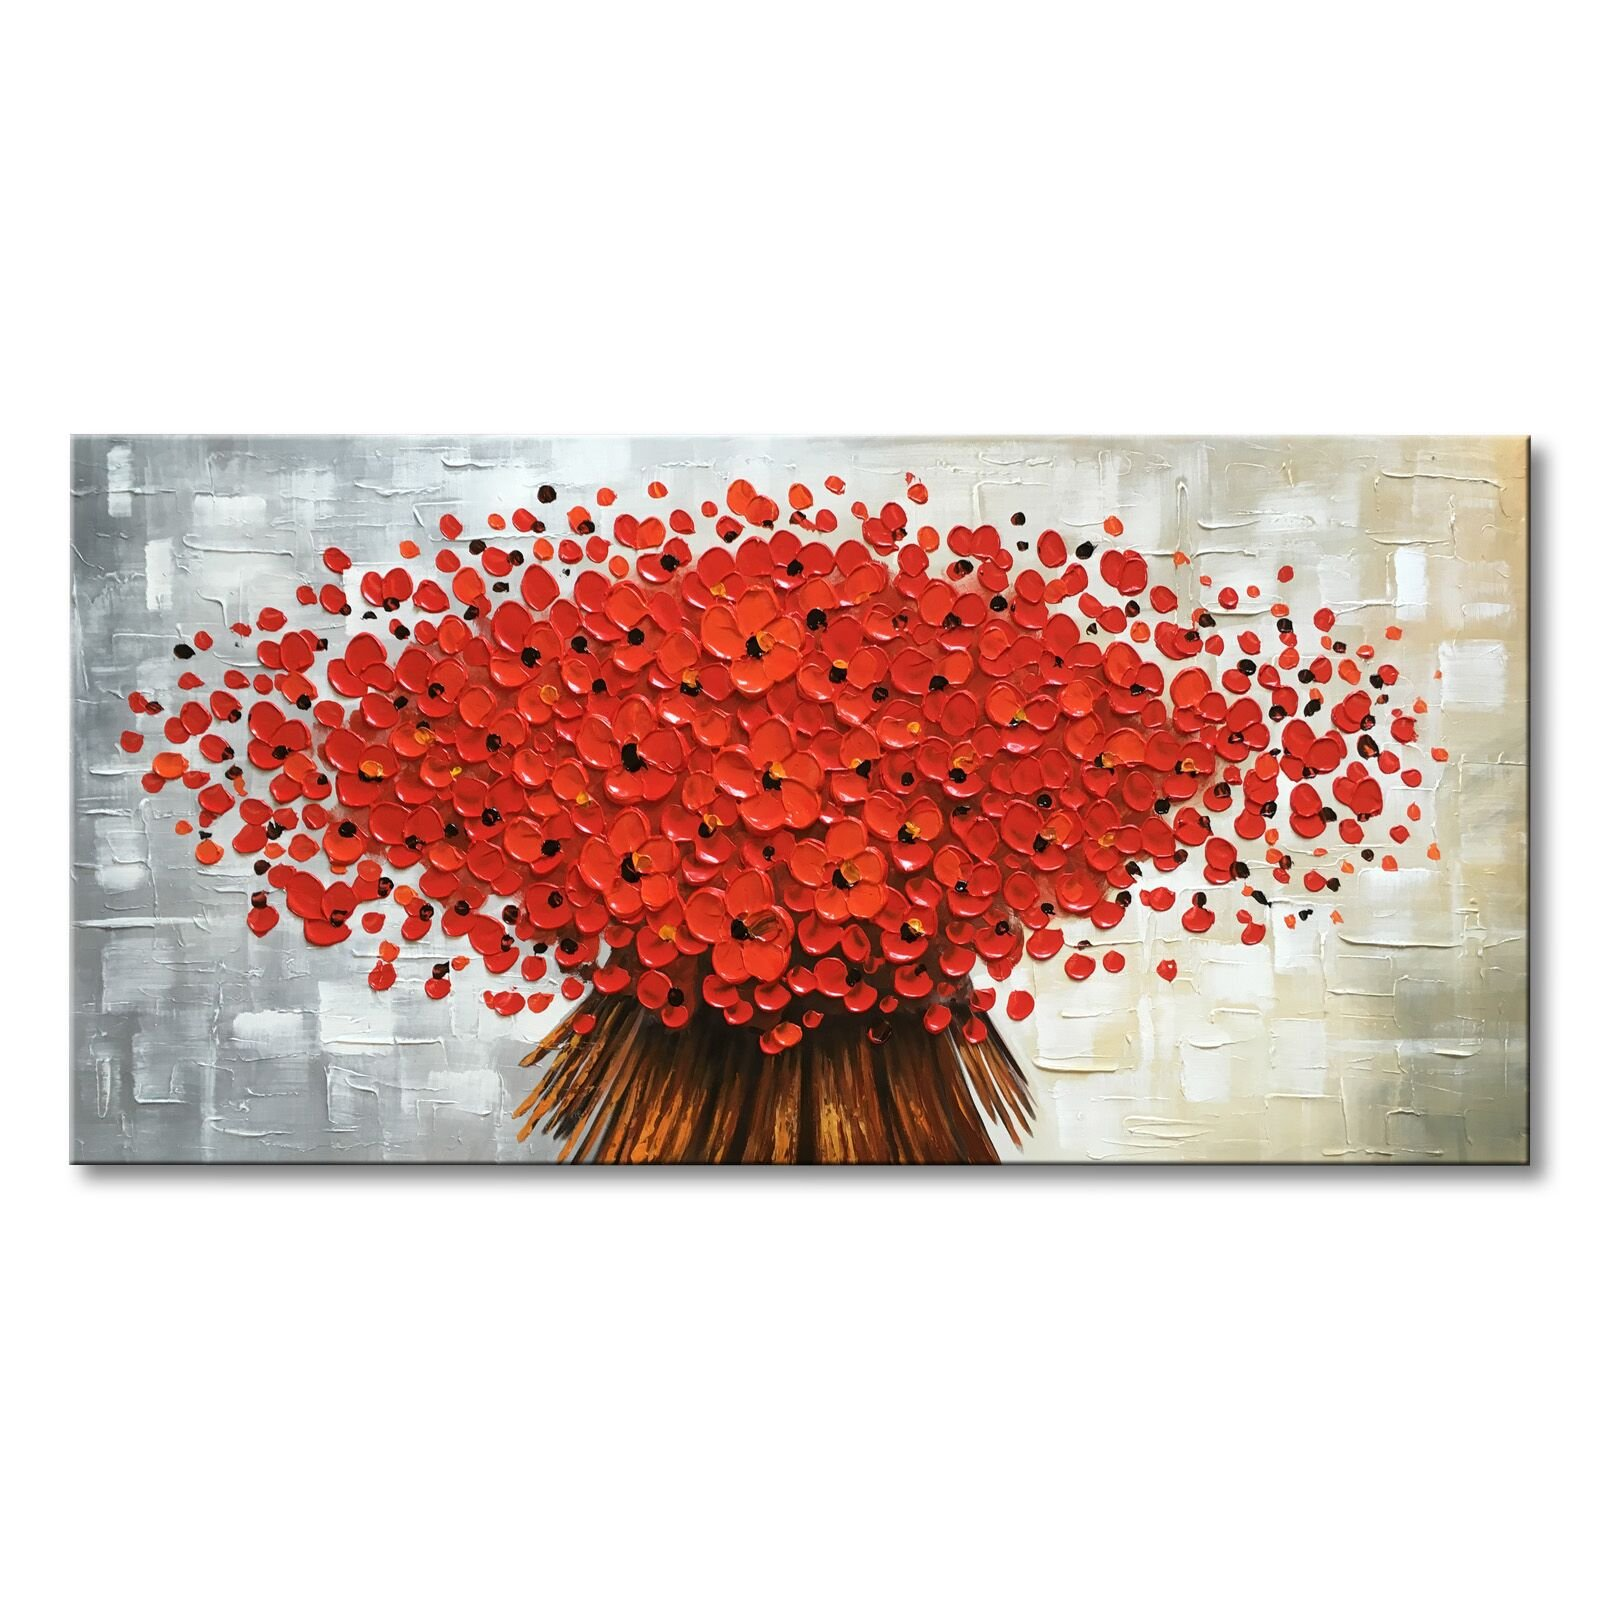 Winpeak Art Hand Painted Abstract Canvas Wall Art Modern Textured Red Flower Oil Painting Contemporary Artwork Floral Hangings Stretched and Framed Ready to Hang (48'' W x 24'' H, Red)